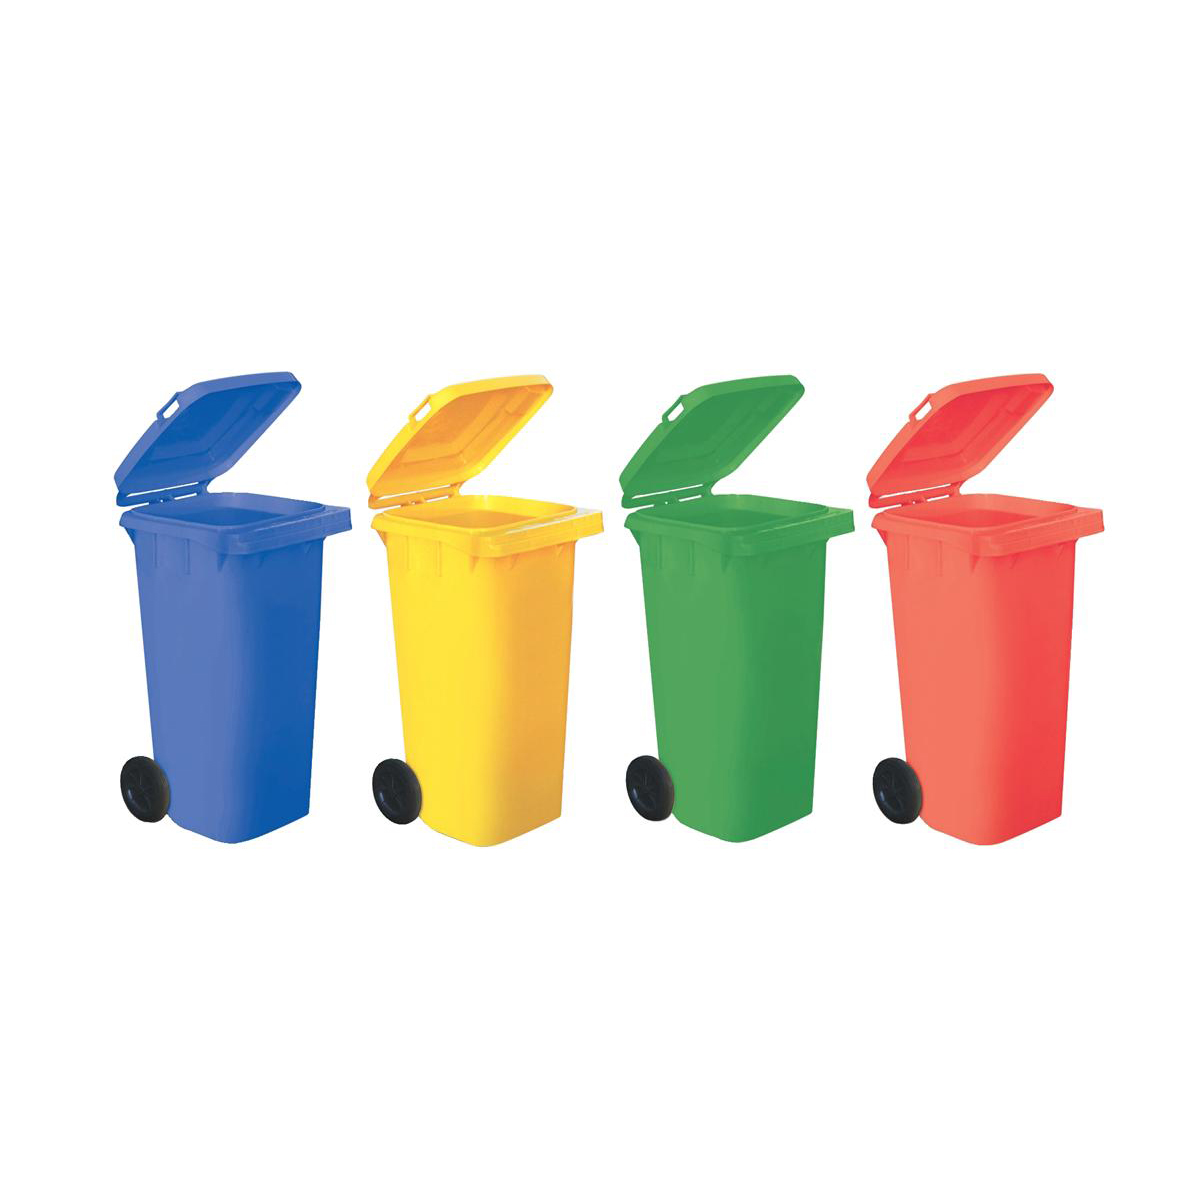 Bin containers or rigid liners Wheelie Bin High Density Polyethylene with Rear Wheels 120 Litre Capacity 480x560x930mm Red